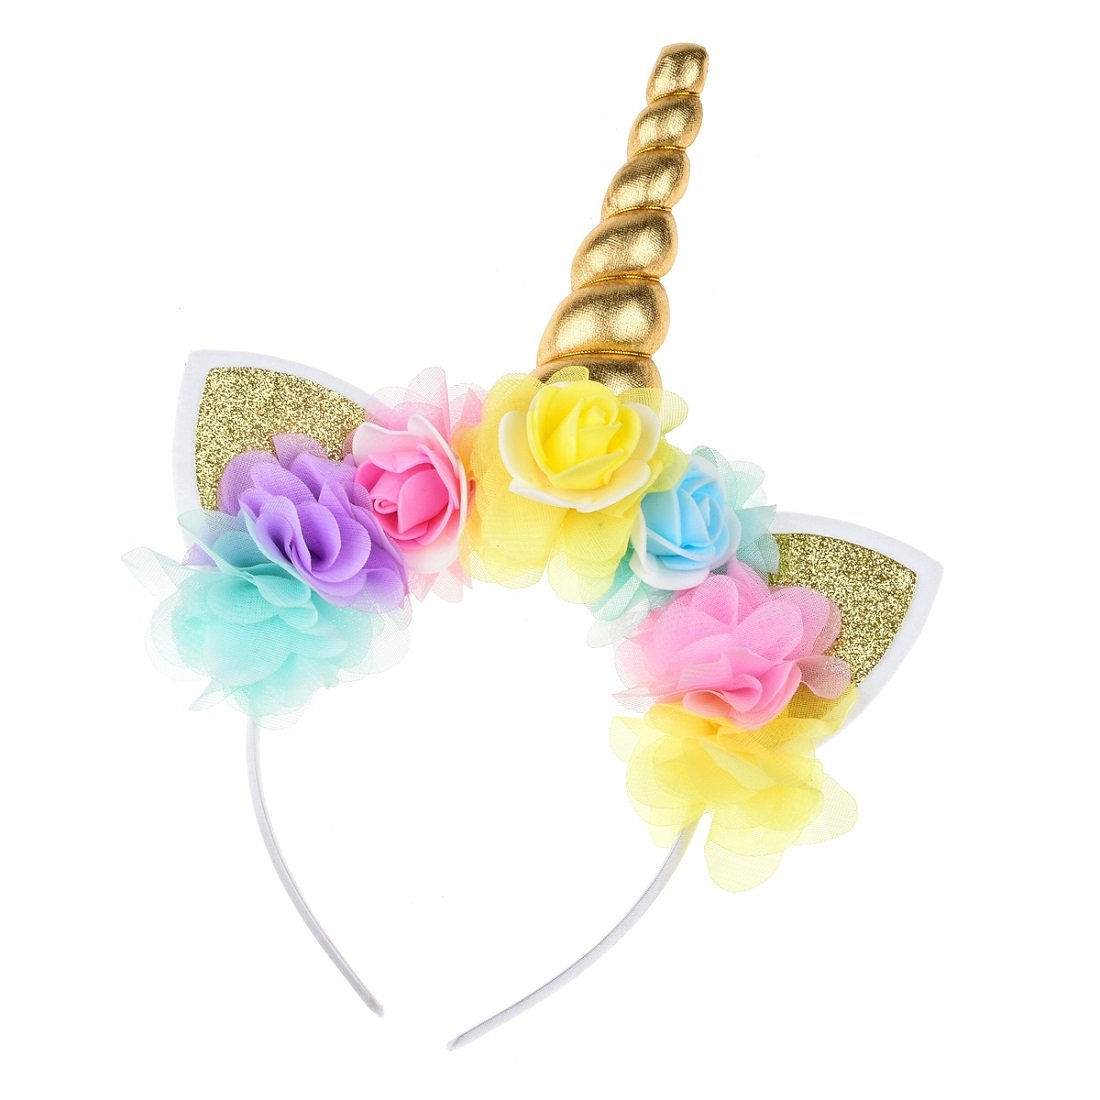 Daisyu Unicorn Horn Ears Flower Headband Unicorn Horn Headband For Party Or Cosplay (Gold--A) by Daisyu